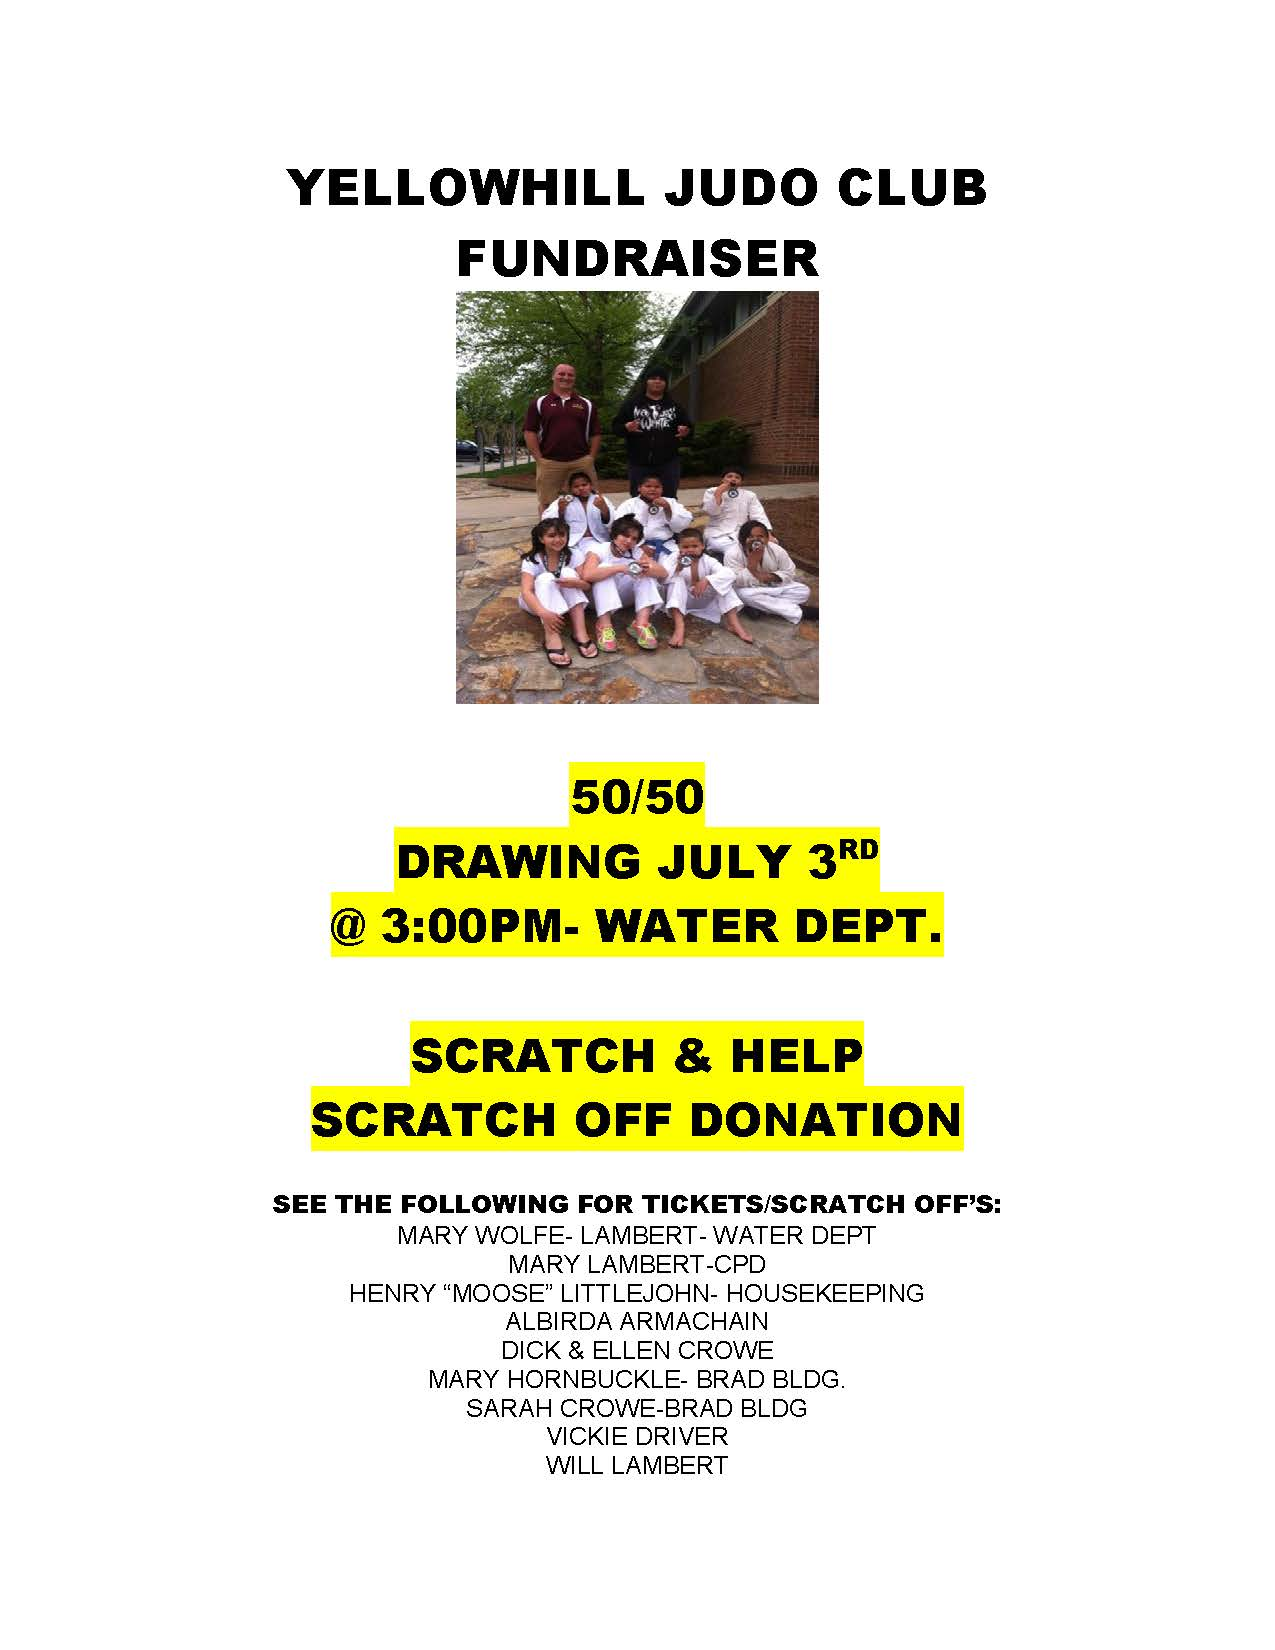 SCRATCH OFF AND 50 50 FUNDRAISER 2013